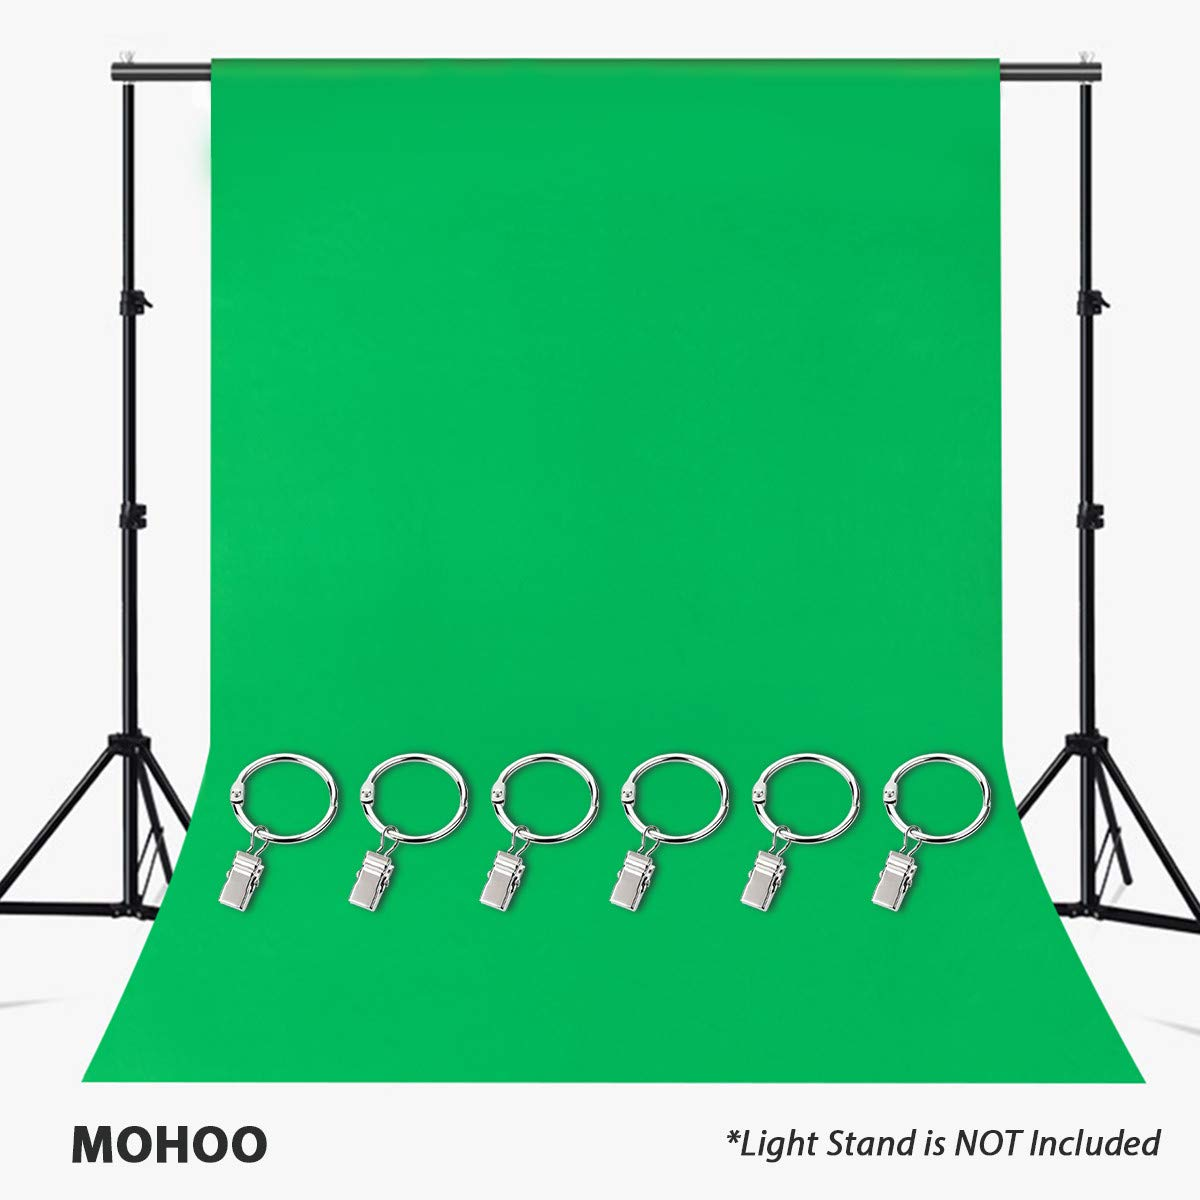 MOHOO 7x5FT Green Photography Backdrop, Green Backdrop with Ring Metal Holding Clips, Solid Color Green Screen Photo Backdrop, Studio Photography Props for Studio Video Photo Photo Shot